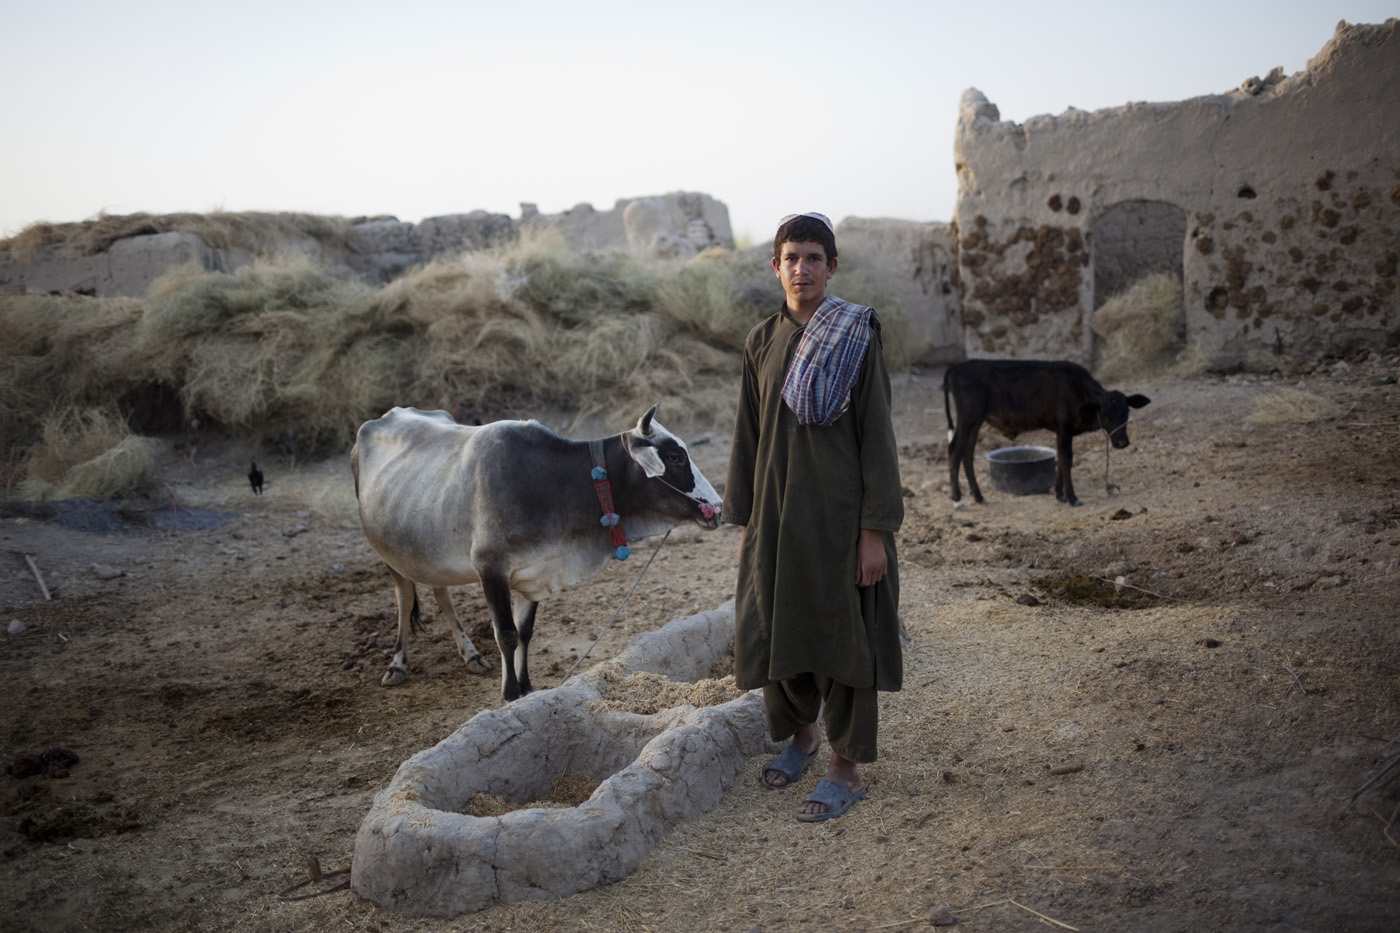 August 2009: An Afghan farmer stands outside his home as a U.S. Marine patrol walk past in Khan Neshin, Helmand province.